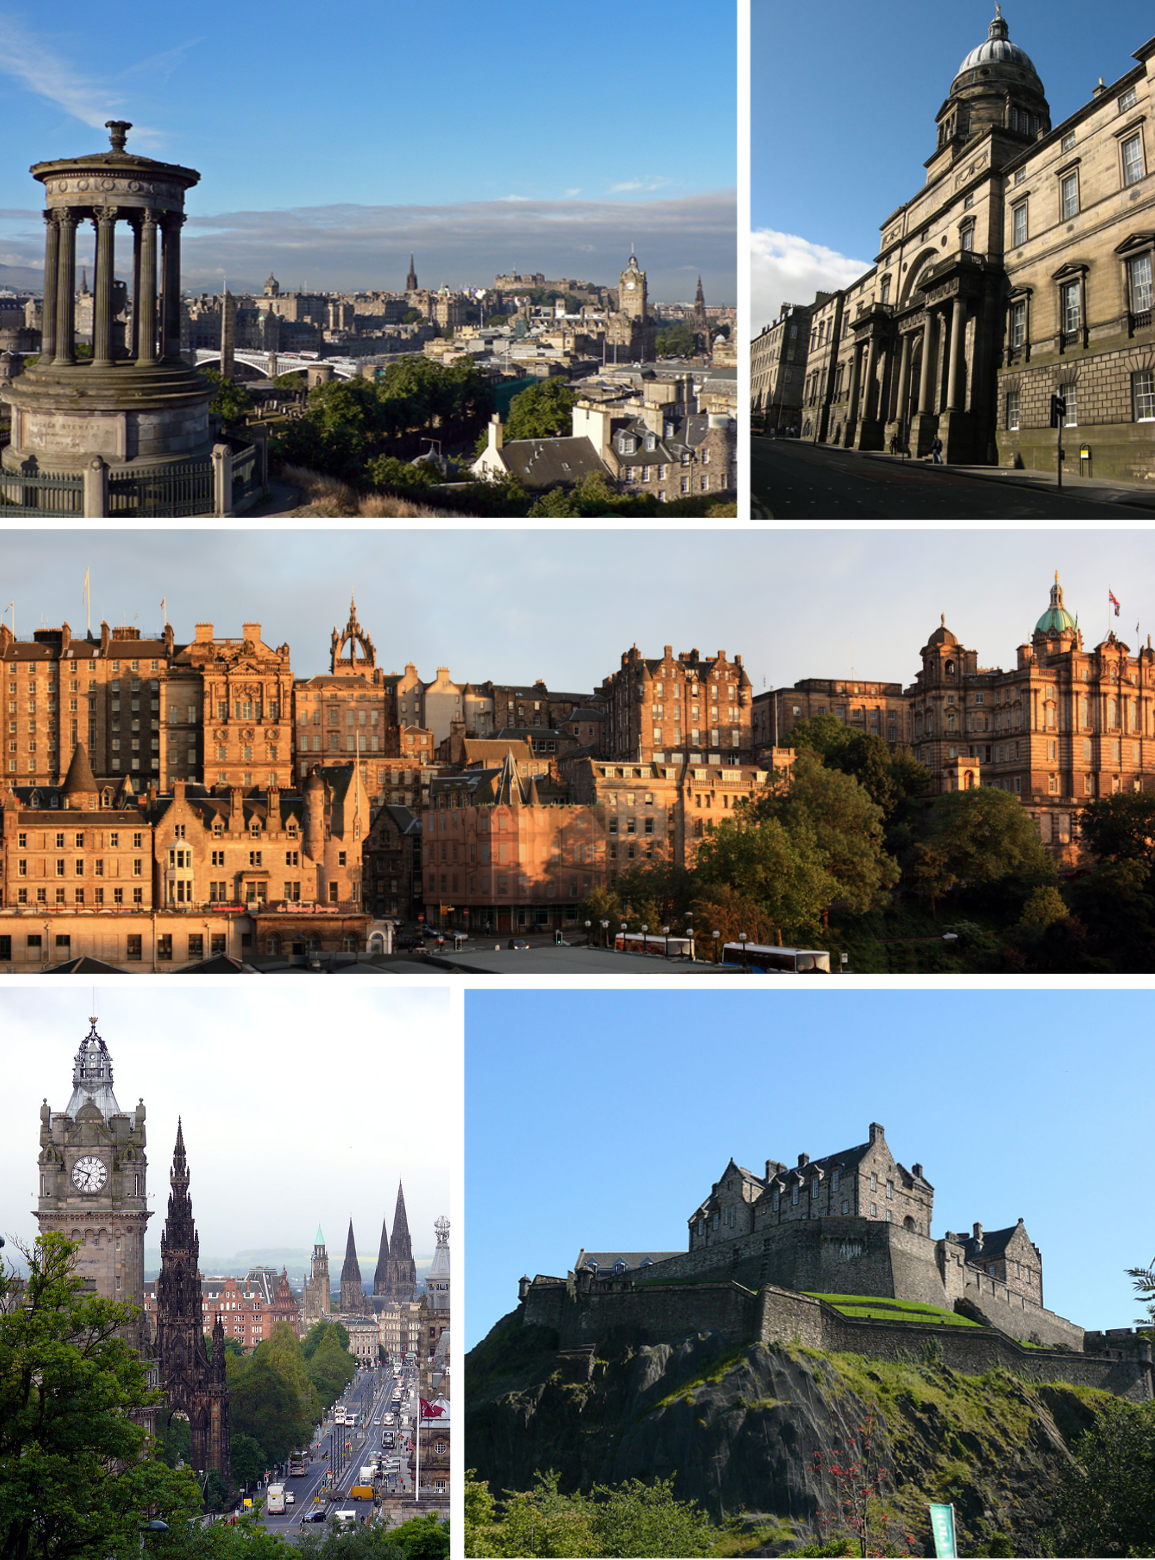 http://upload.wikimedia.org/wikipedia/commons/a/ab/EdinburghMontage.png